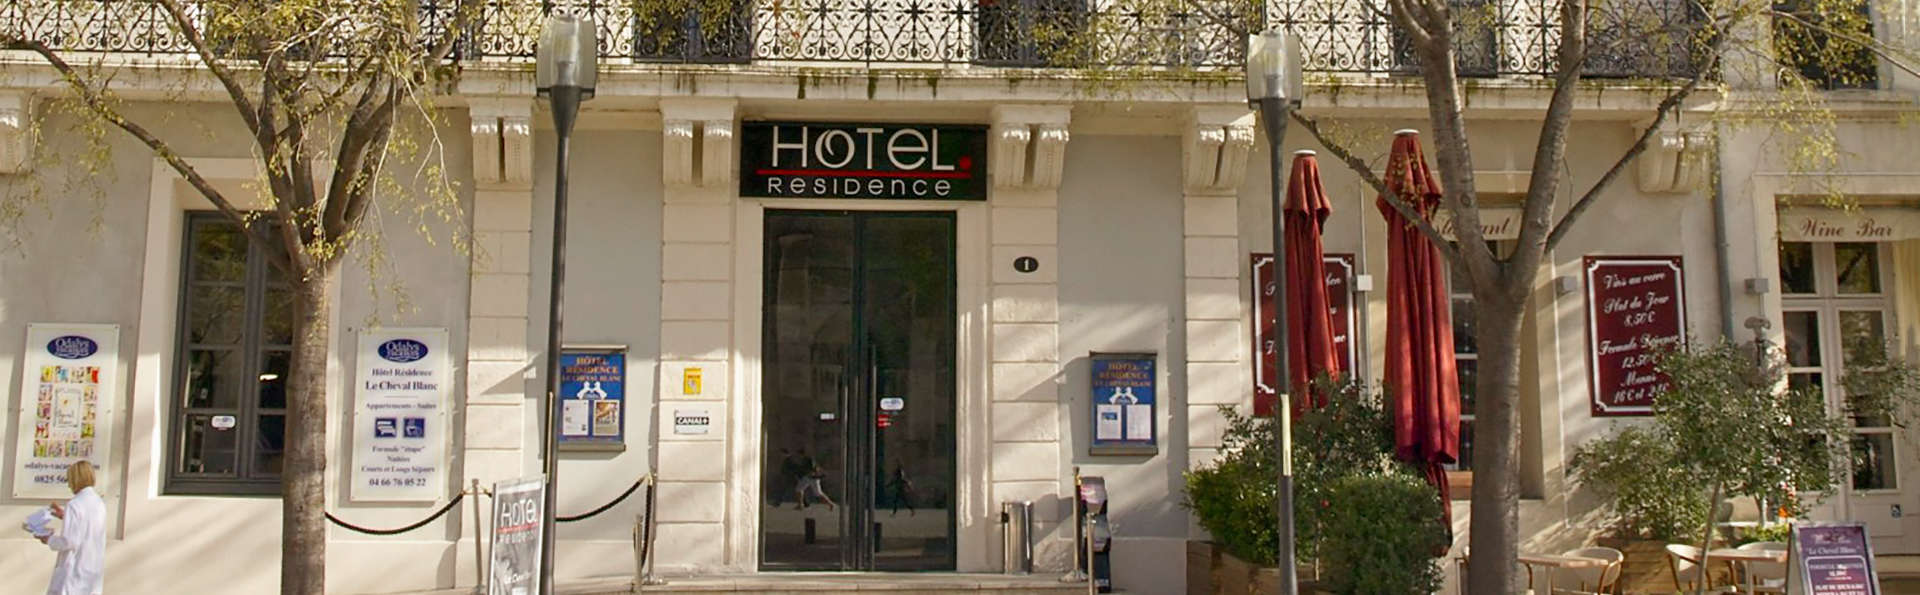 Appart 39 h tel odalys le cheval blanc 3 nimes francia for Appart hotel nimes